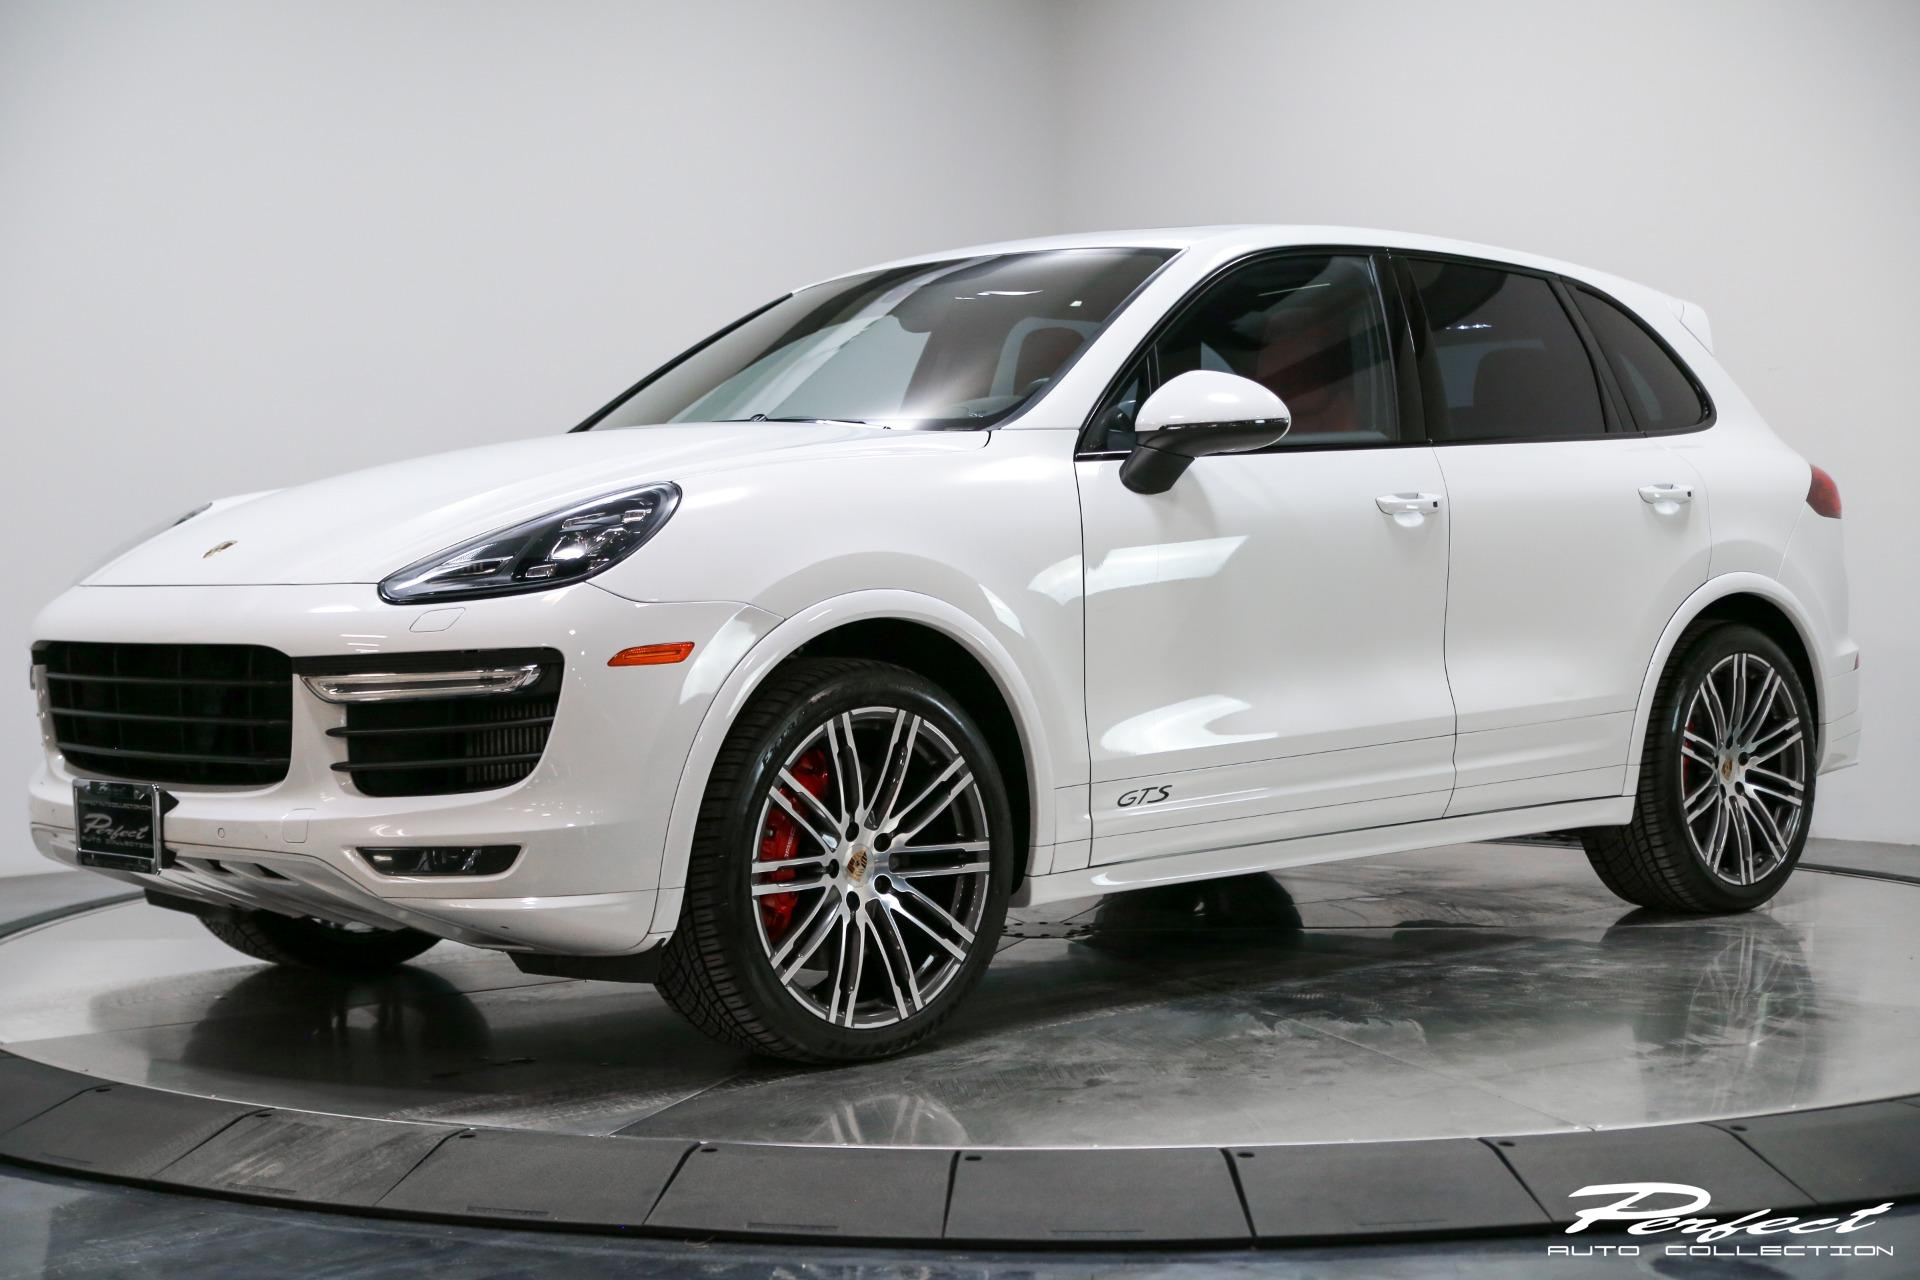 Used 2016 Porsche Cayenne GTS for sale Sold at Perfect Auto Collection in Akron OH 44310 1